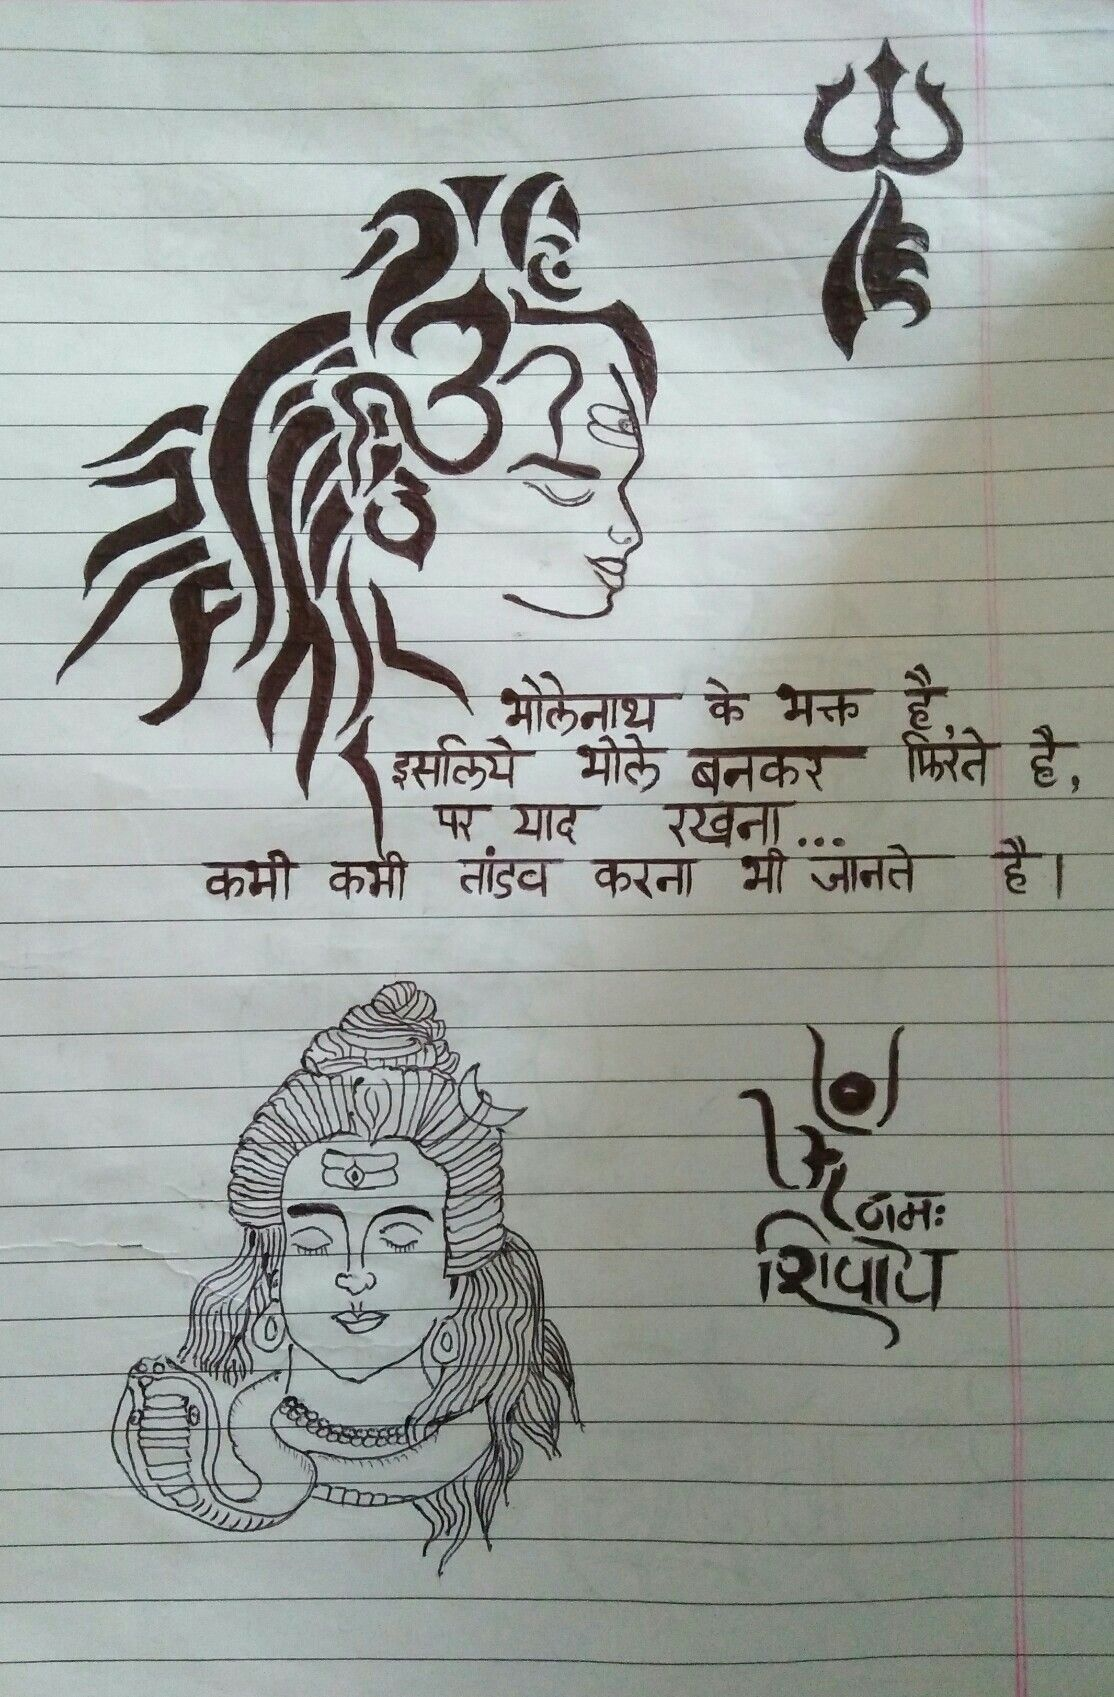 A drawing of mahakal under town